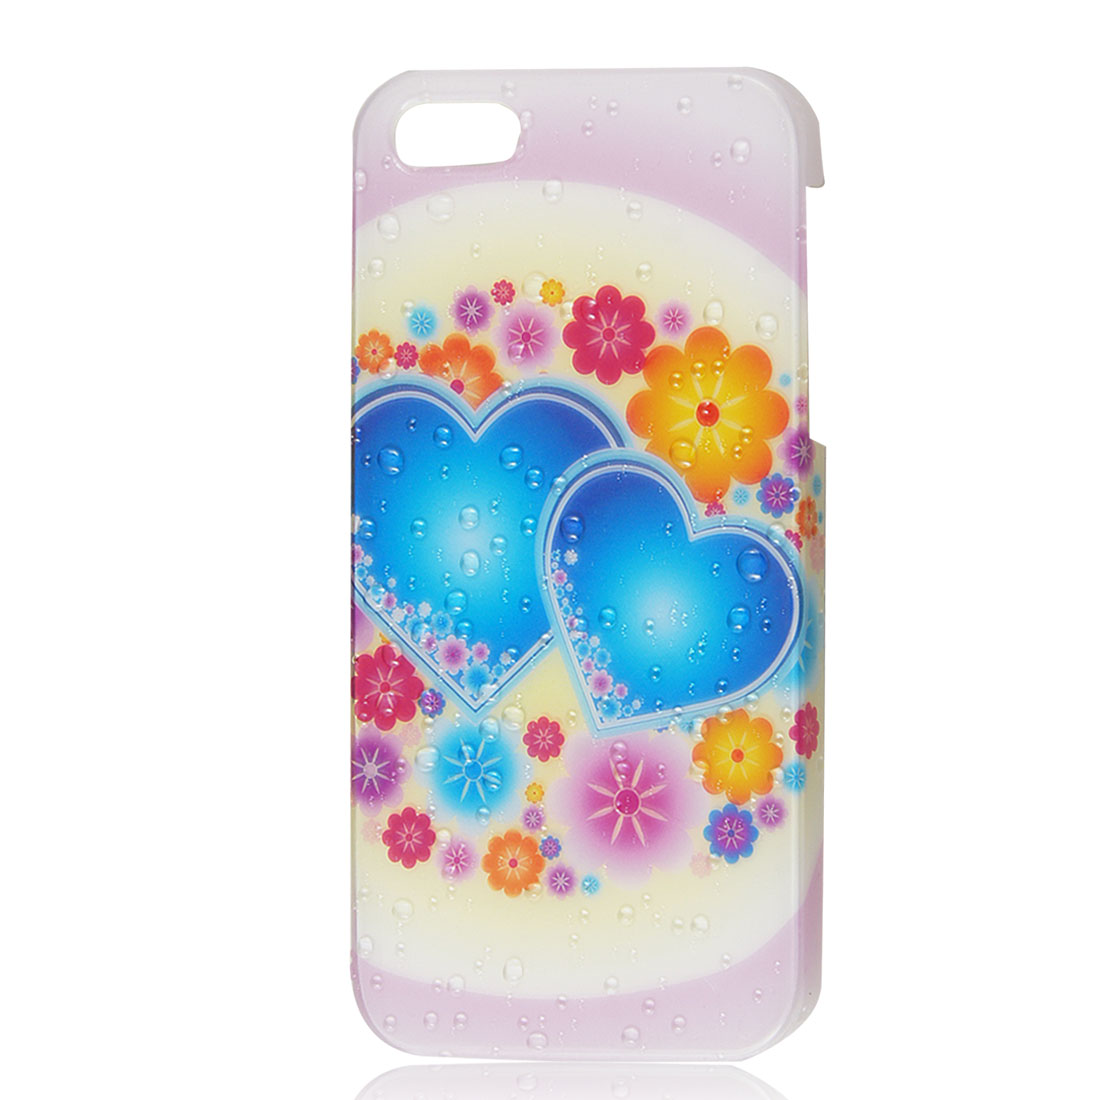 Flower Heart 3D Water Drop Raindrop Hard Back Case Skin Cover for iPhone 5 5G